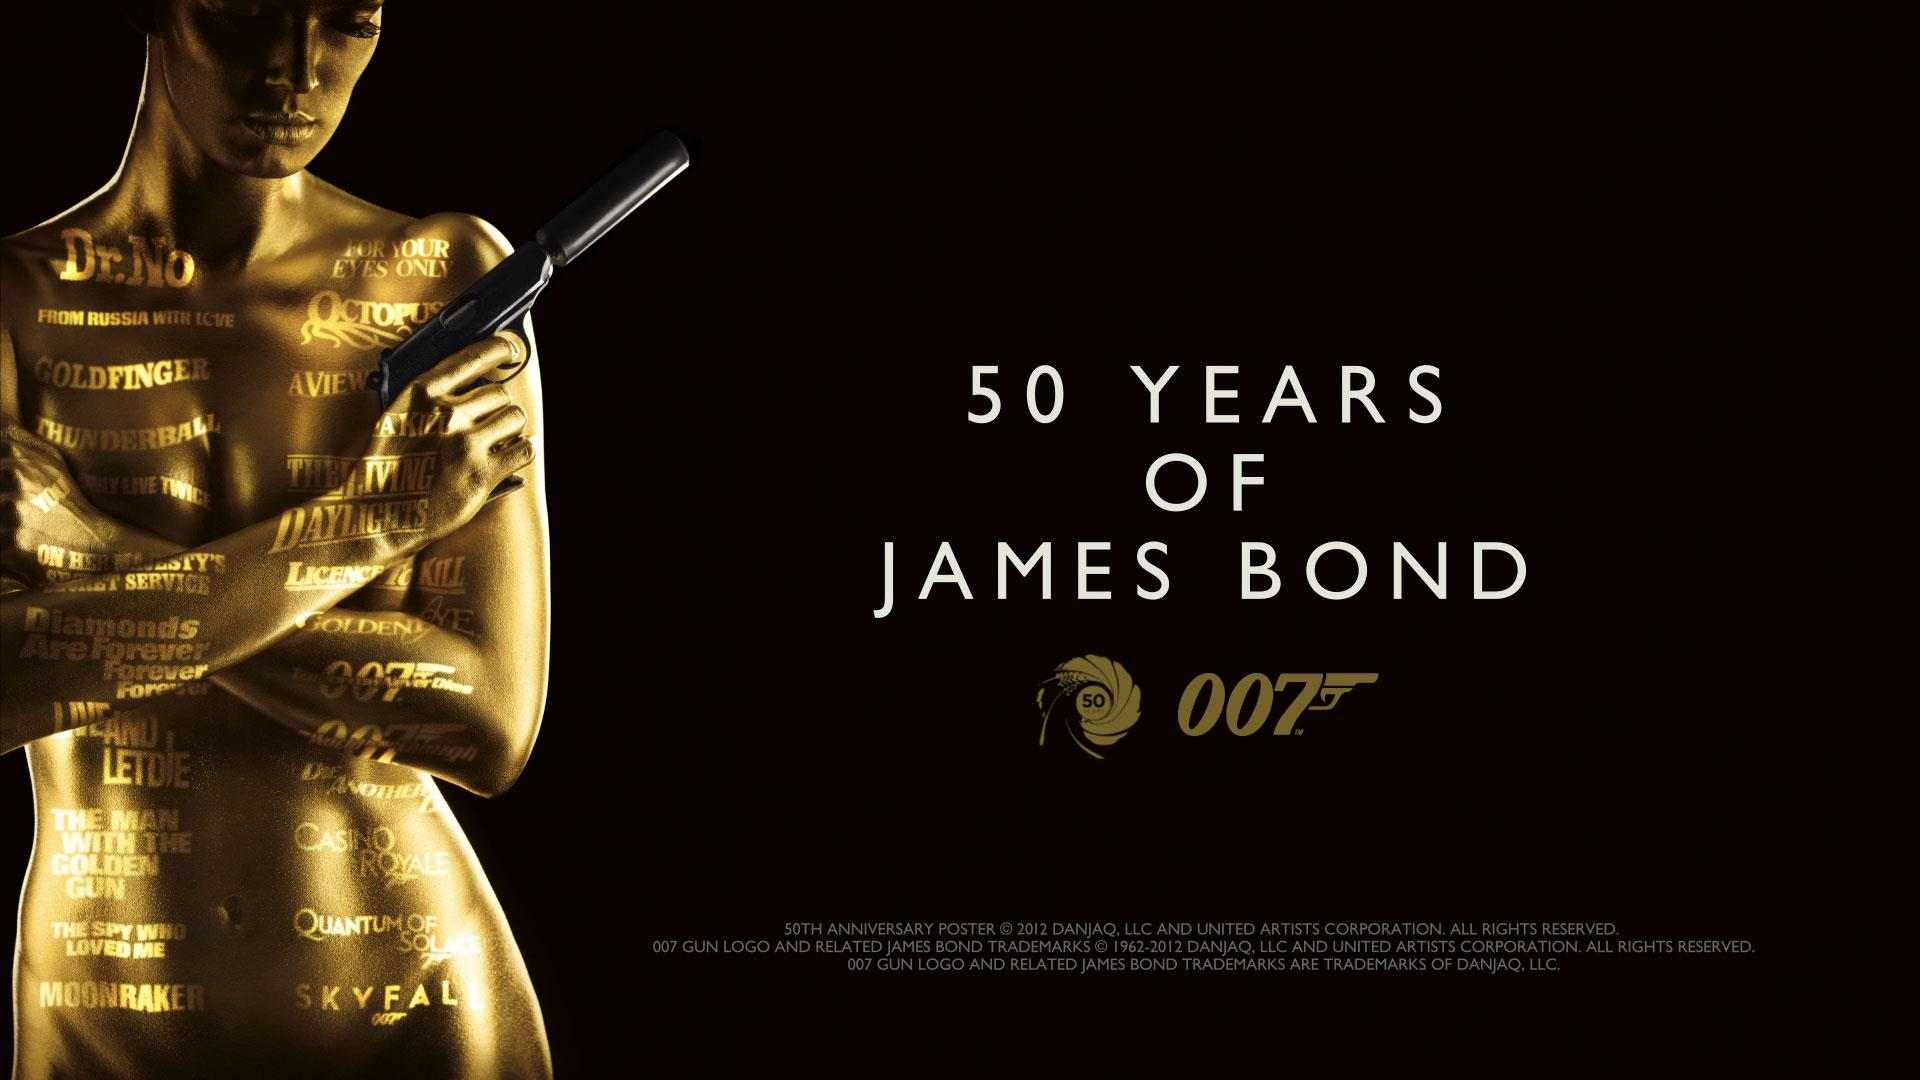 Years of James Bond wallpaper